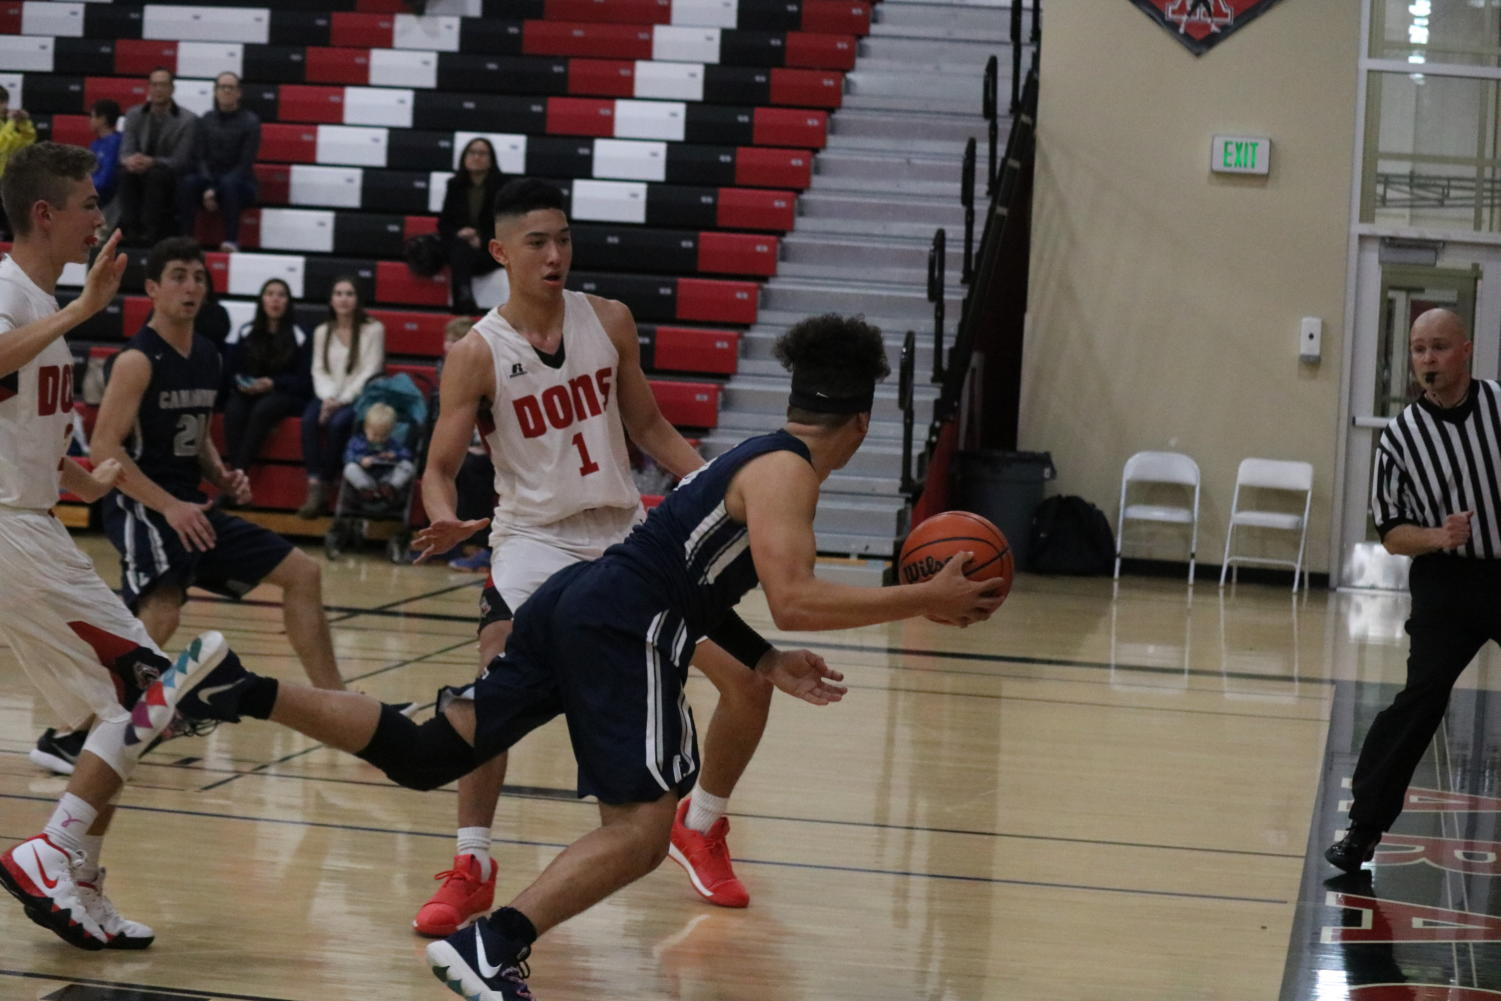 Lajuan+Nelson%2C+a+senior+and+shooting+guard%2C+attempts+to+pass+the+ball+before+going+out+of+bounds.